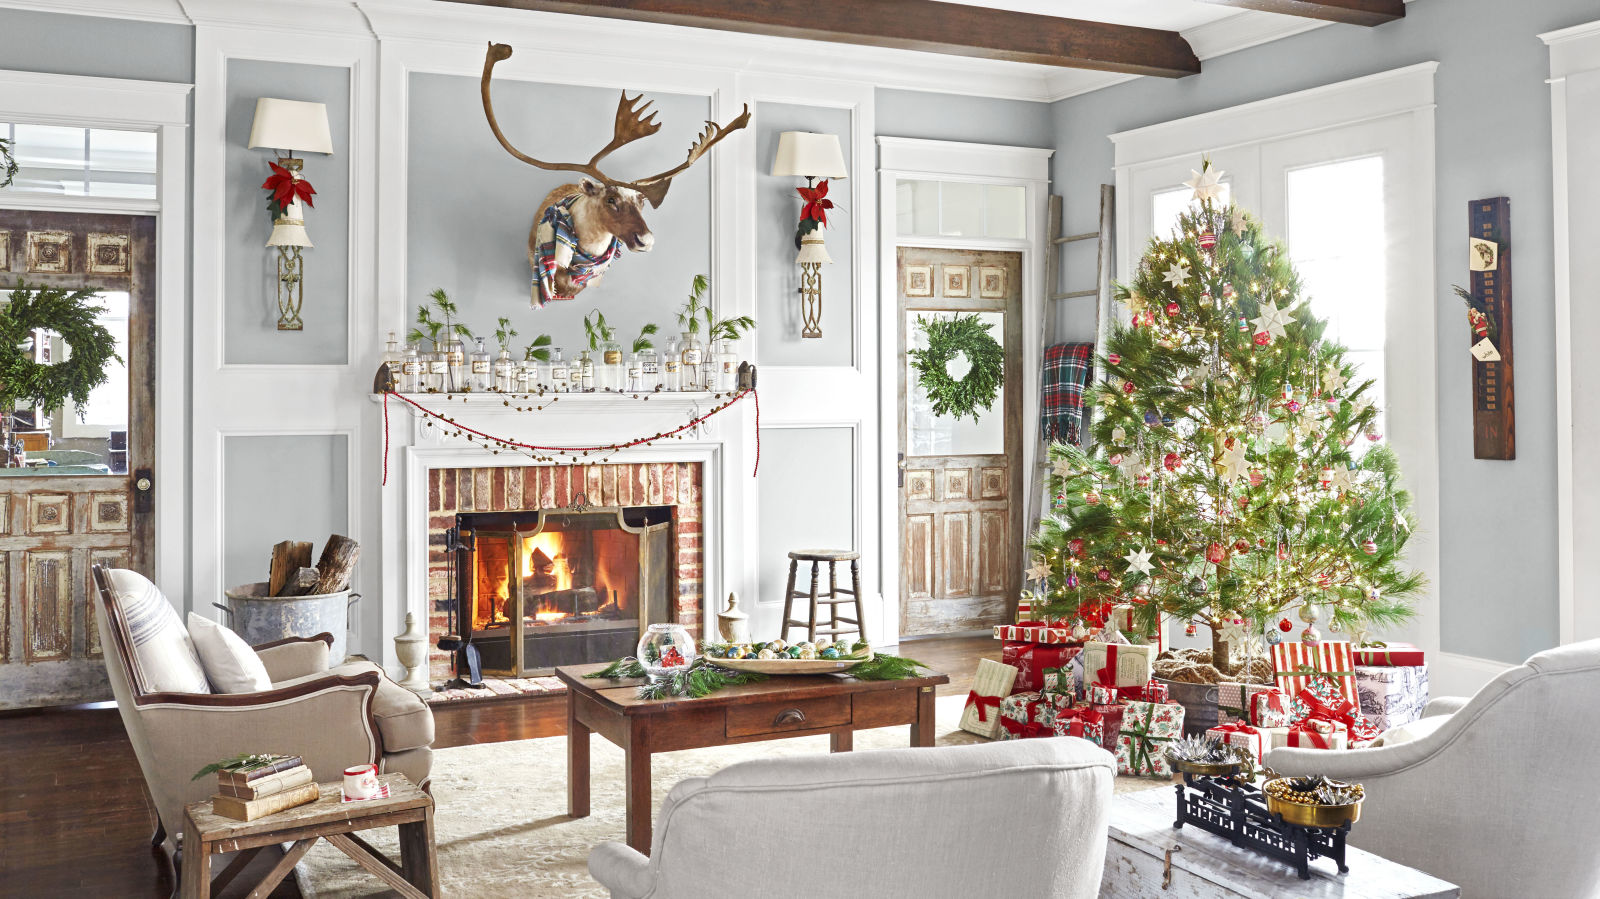 10 Incredible Christmas Home Tours To Inspire You